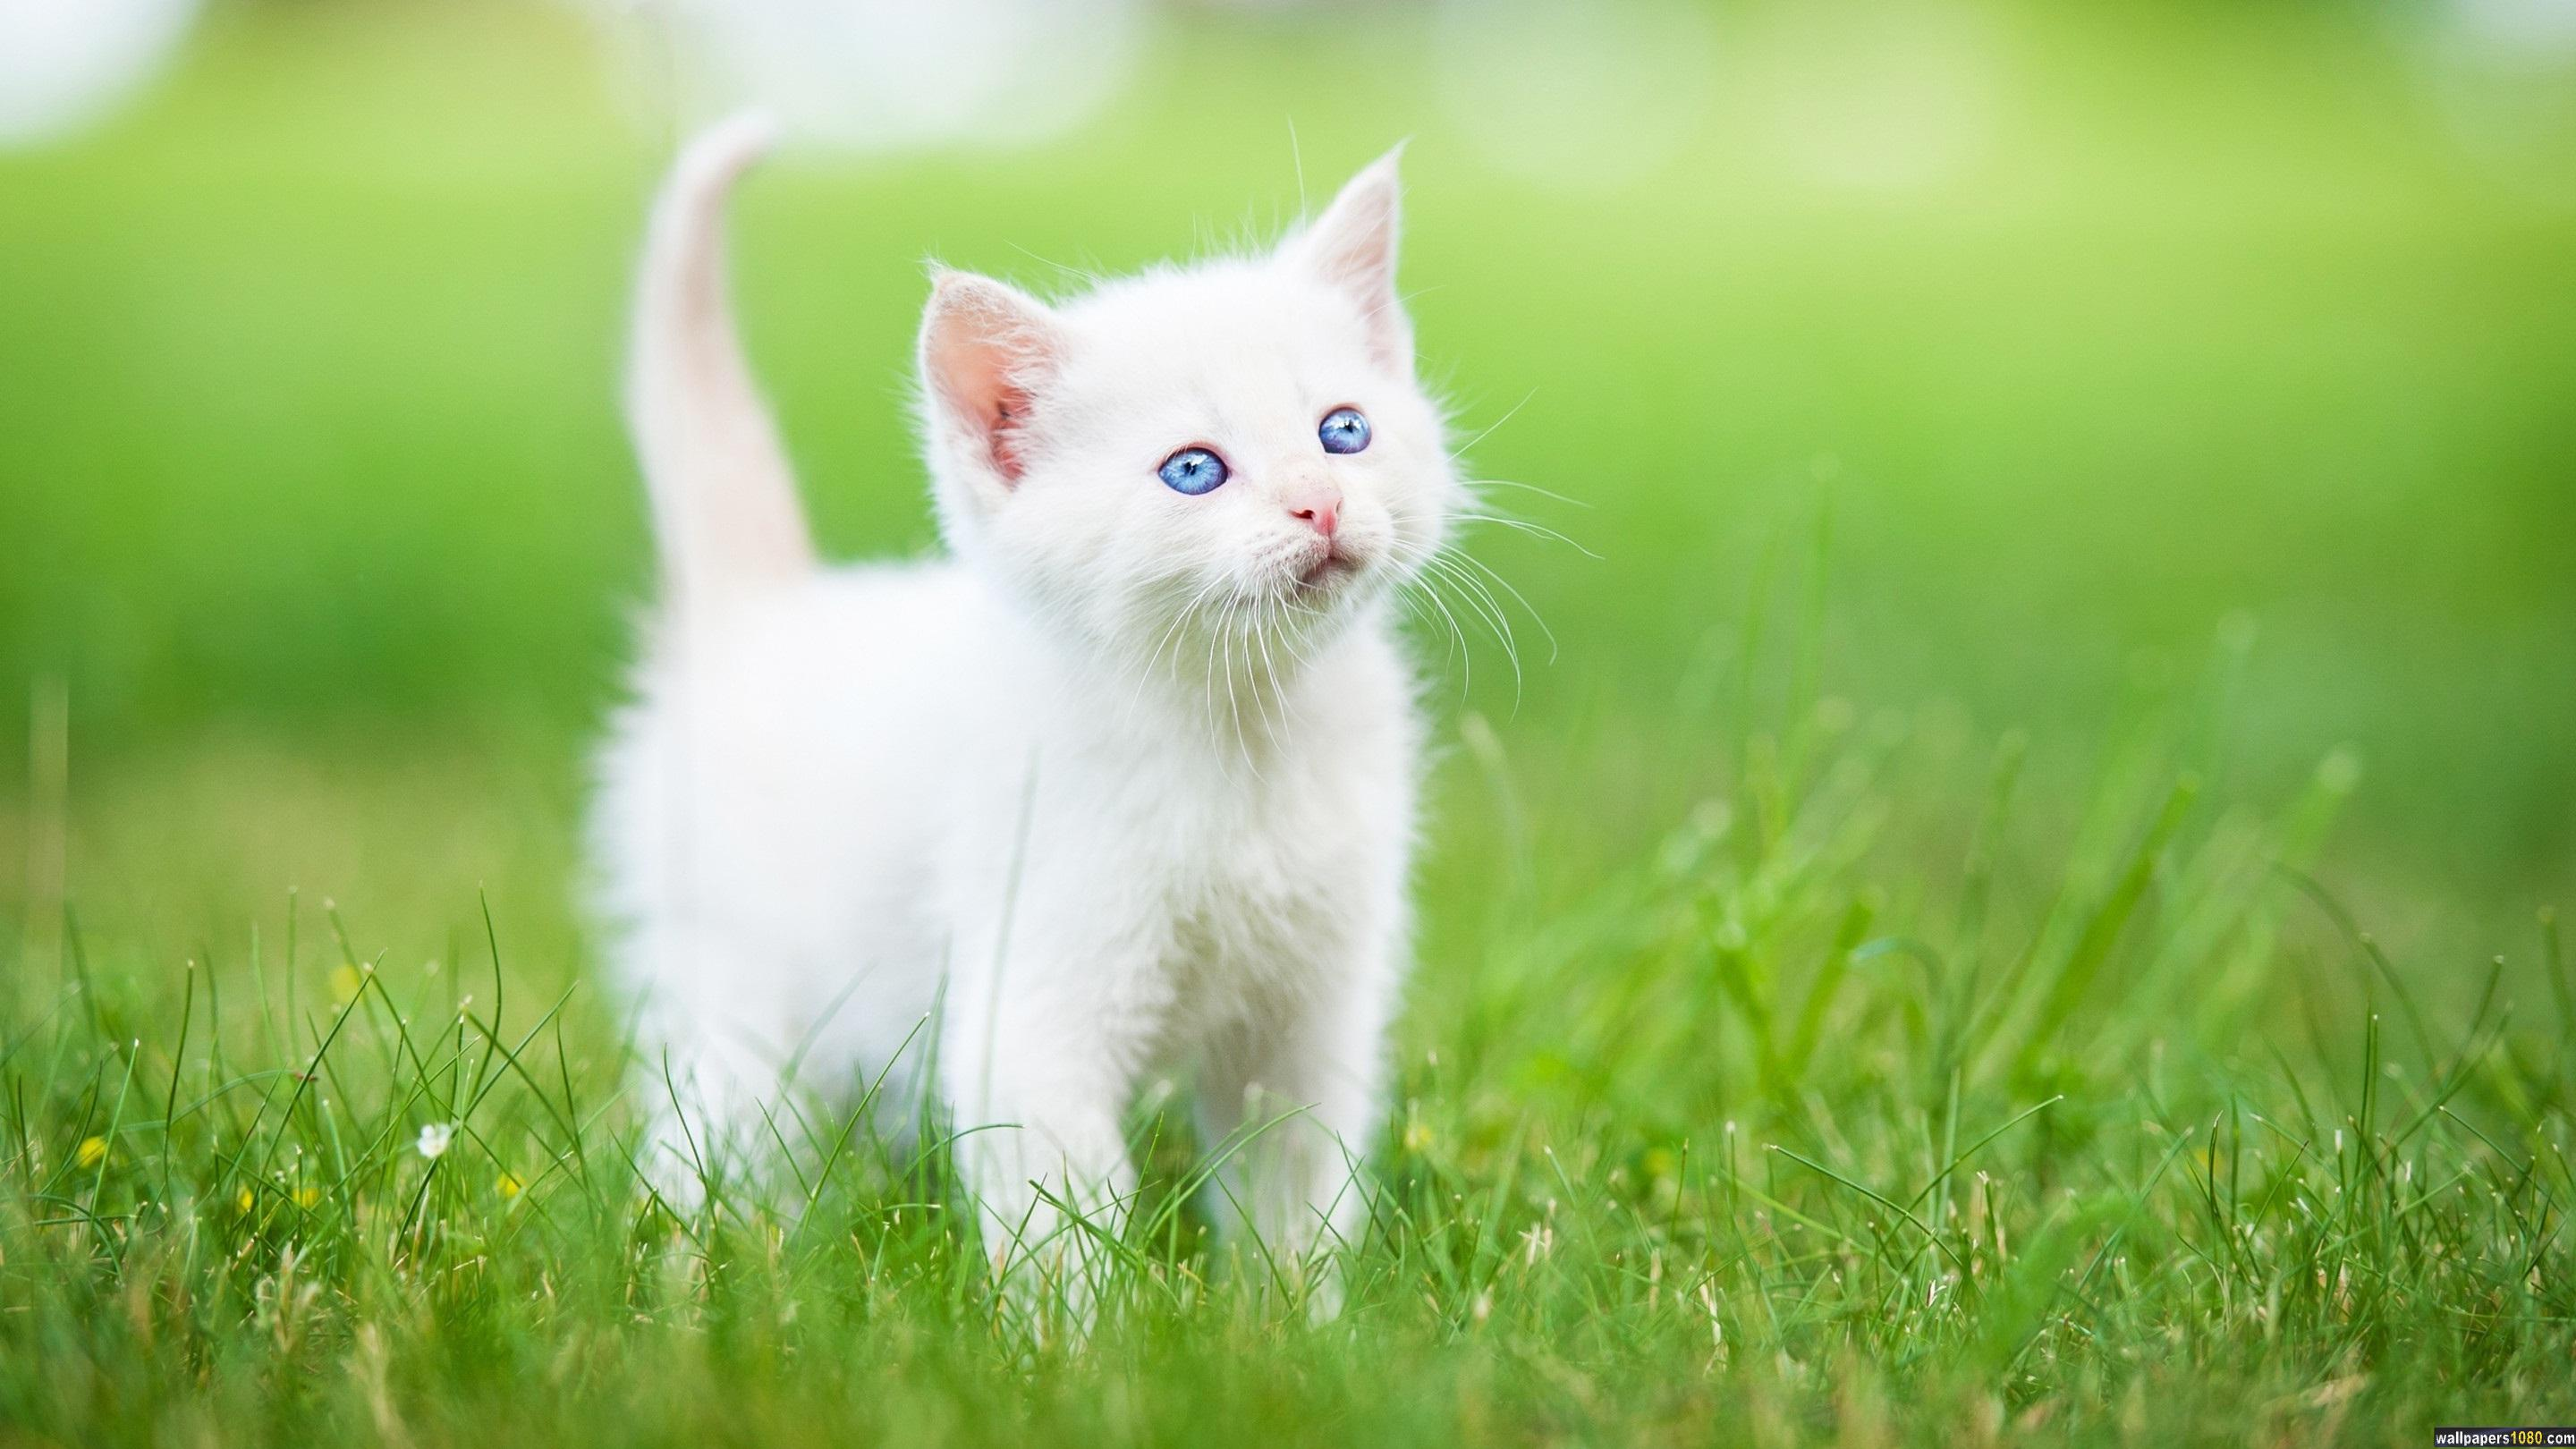 Cute Kittens Images Fluffy White HD Wallpaper And Background Photos